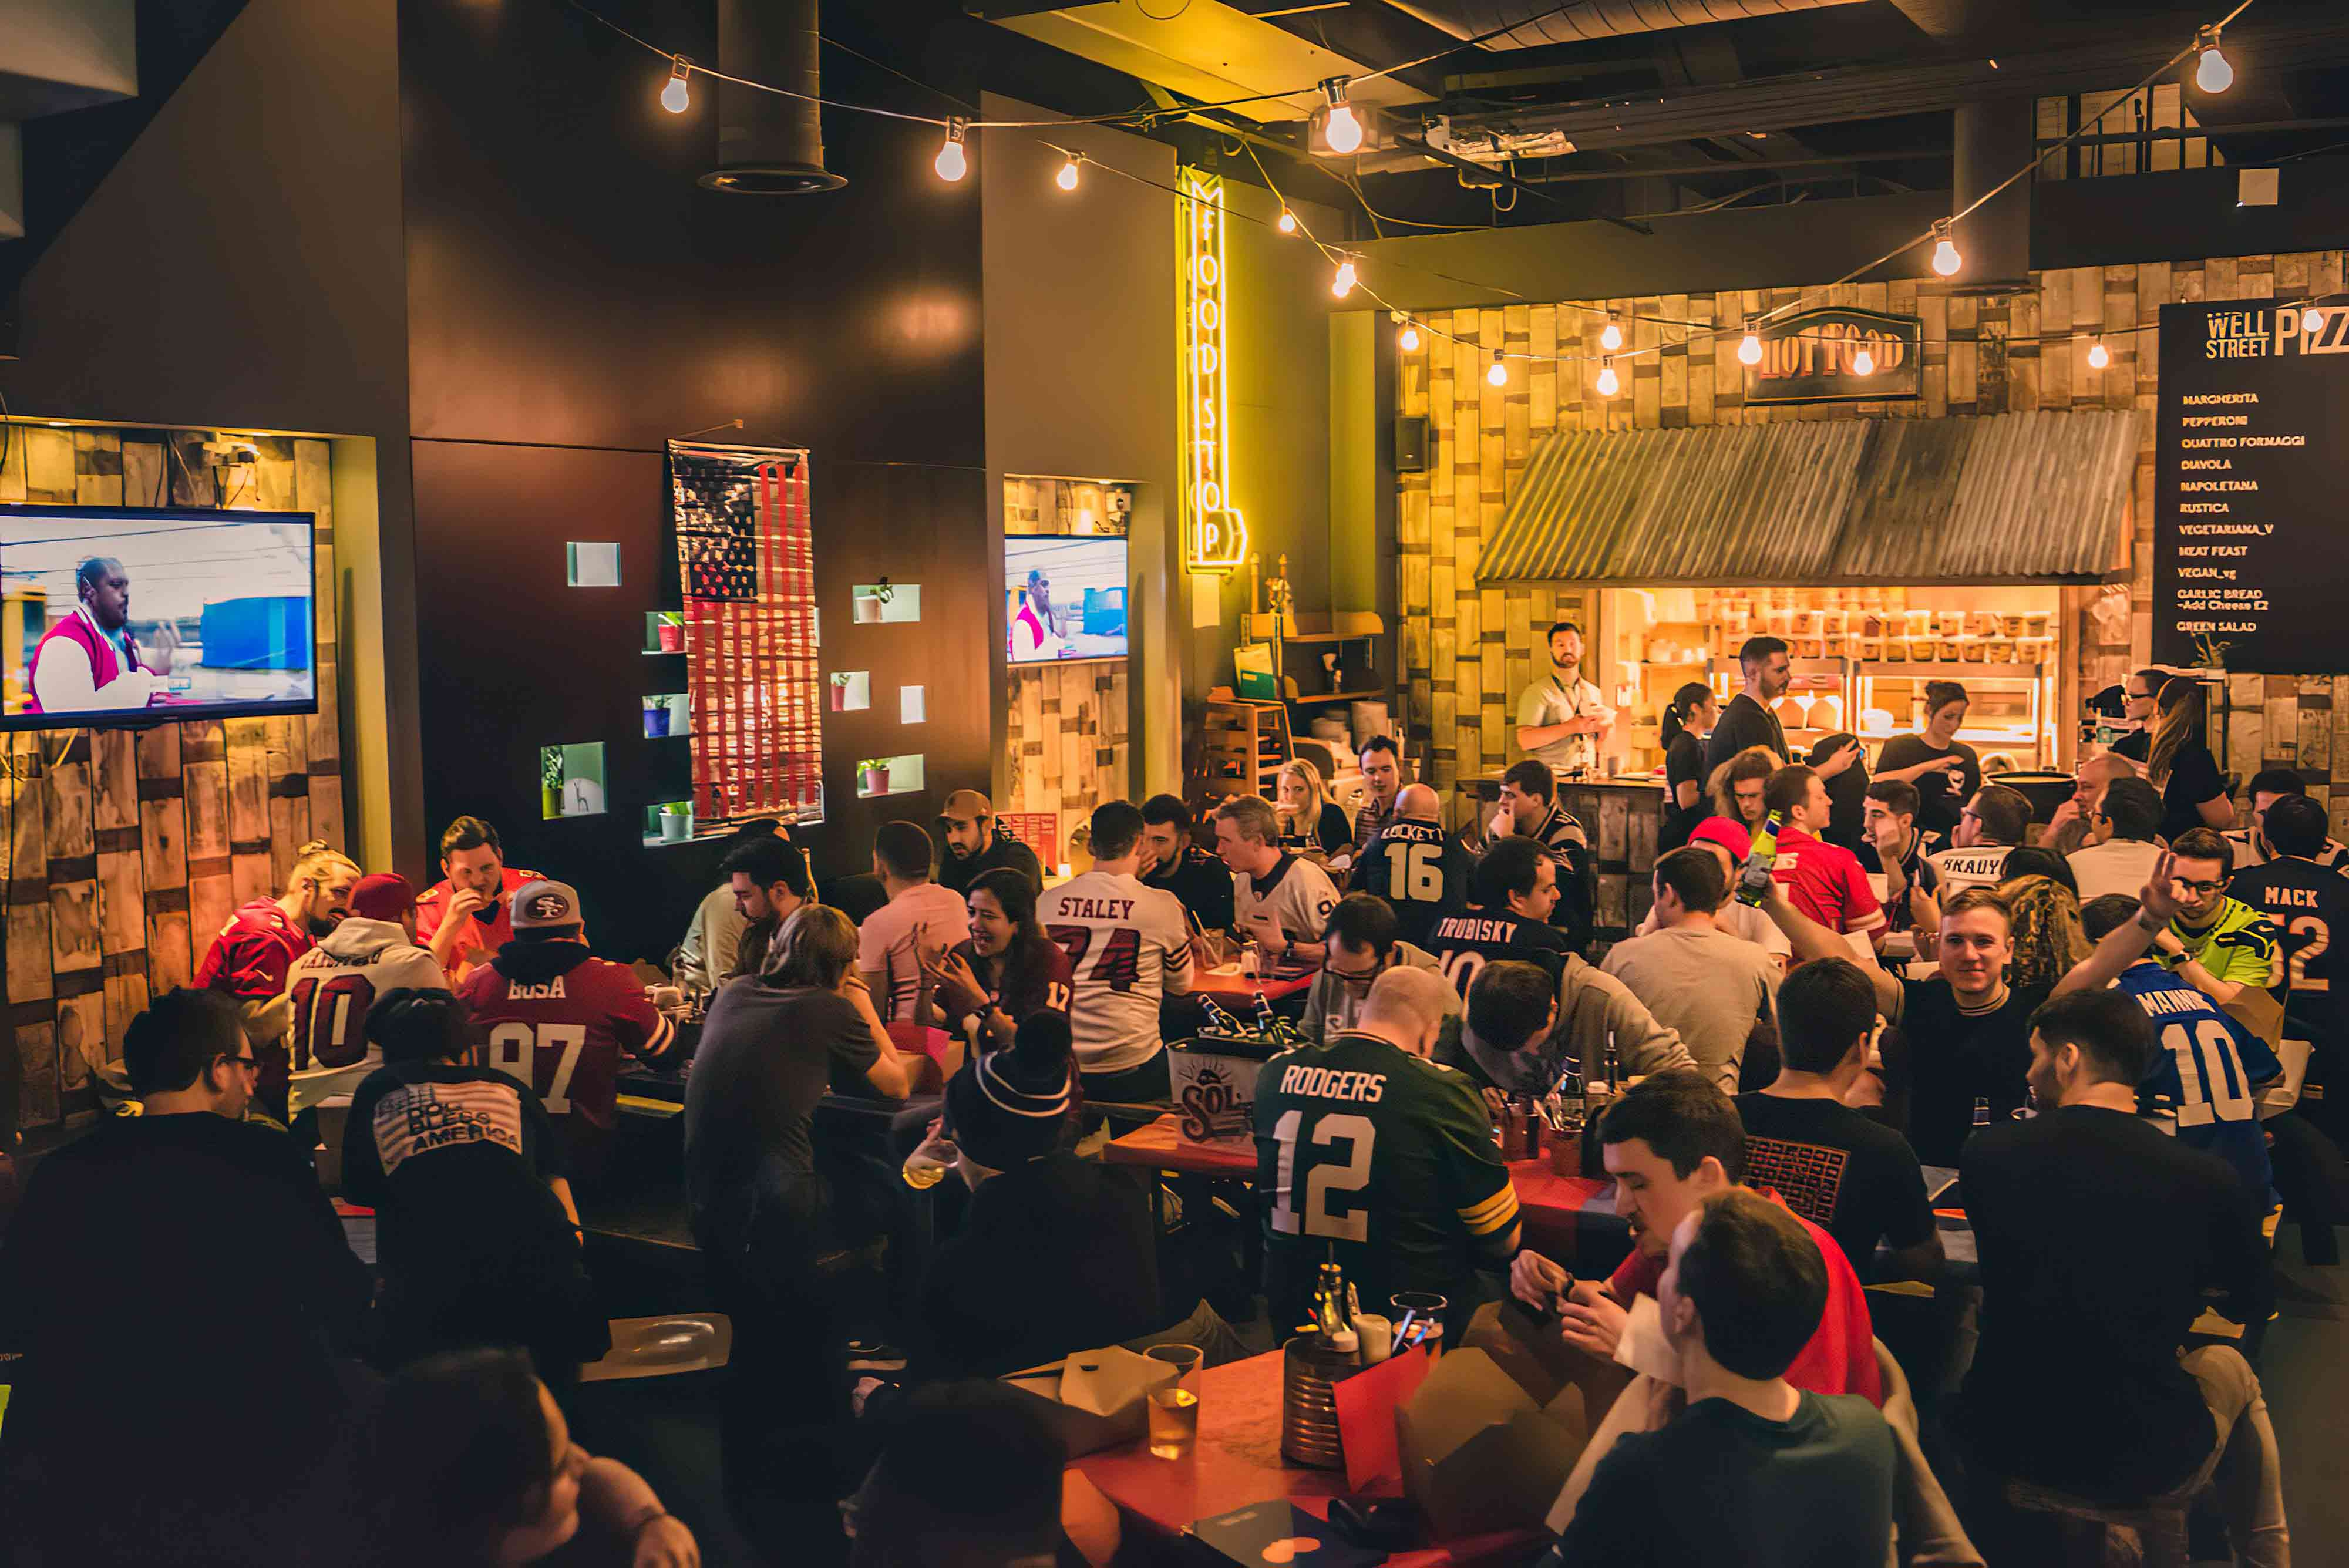 The best place to watch live sports like football, rugby, NFL and boxing.